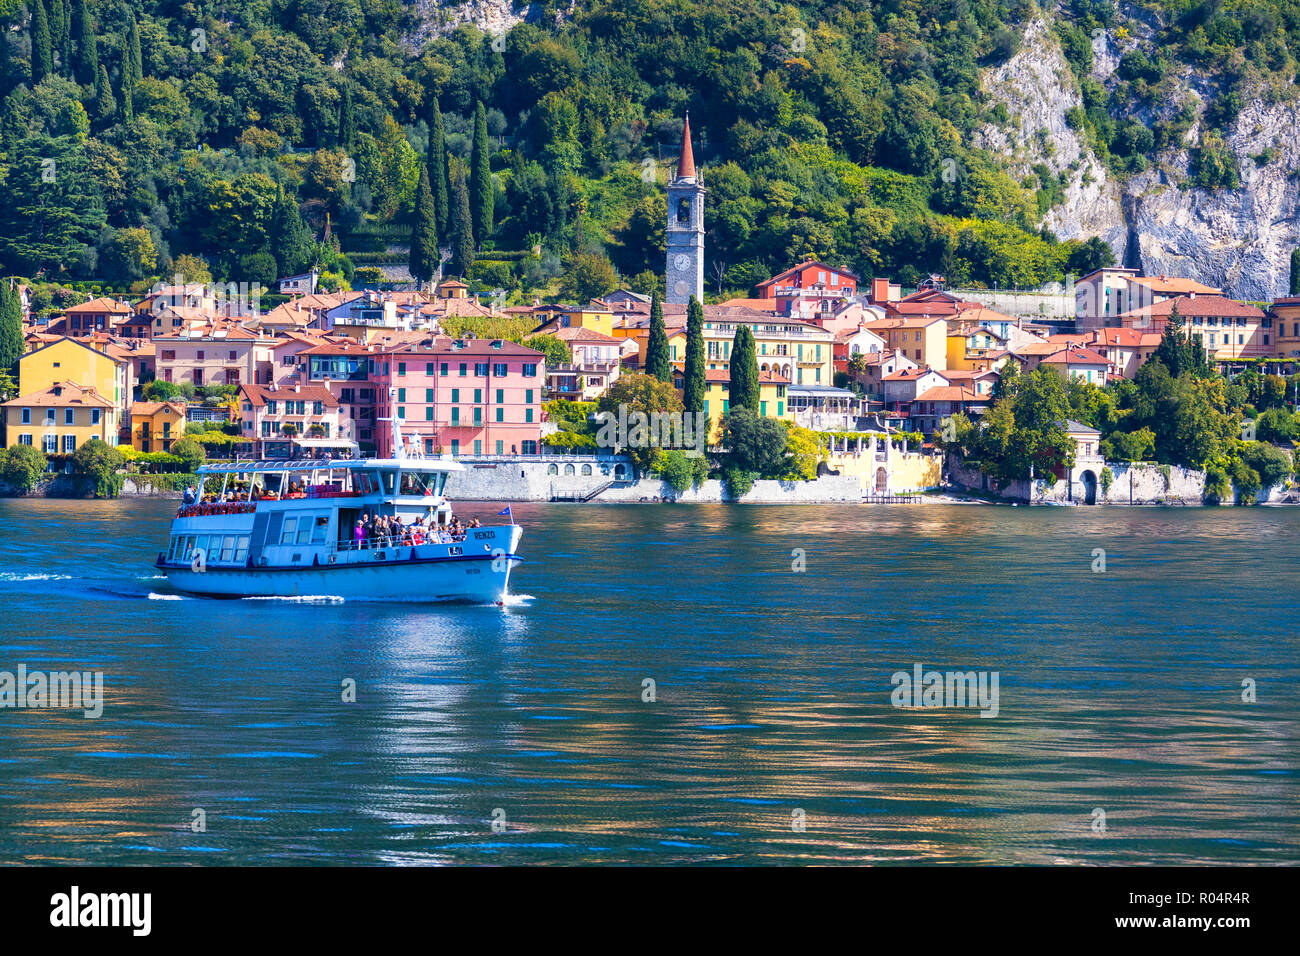 People on boat trip around the village of Varenna, Lake Como, Lecco province, Lombardy, Italian Lakes, Italy, Europe Stock Photo